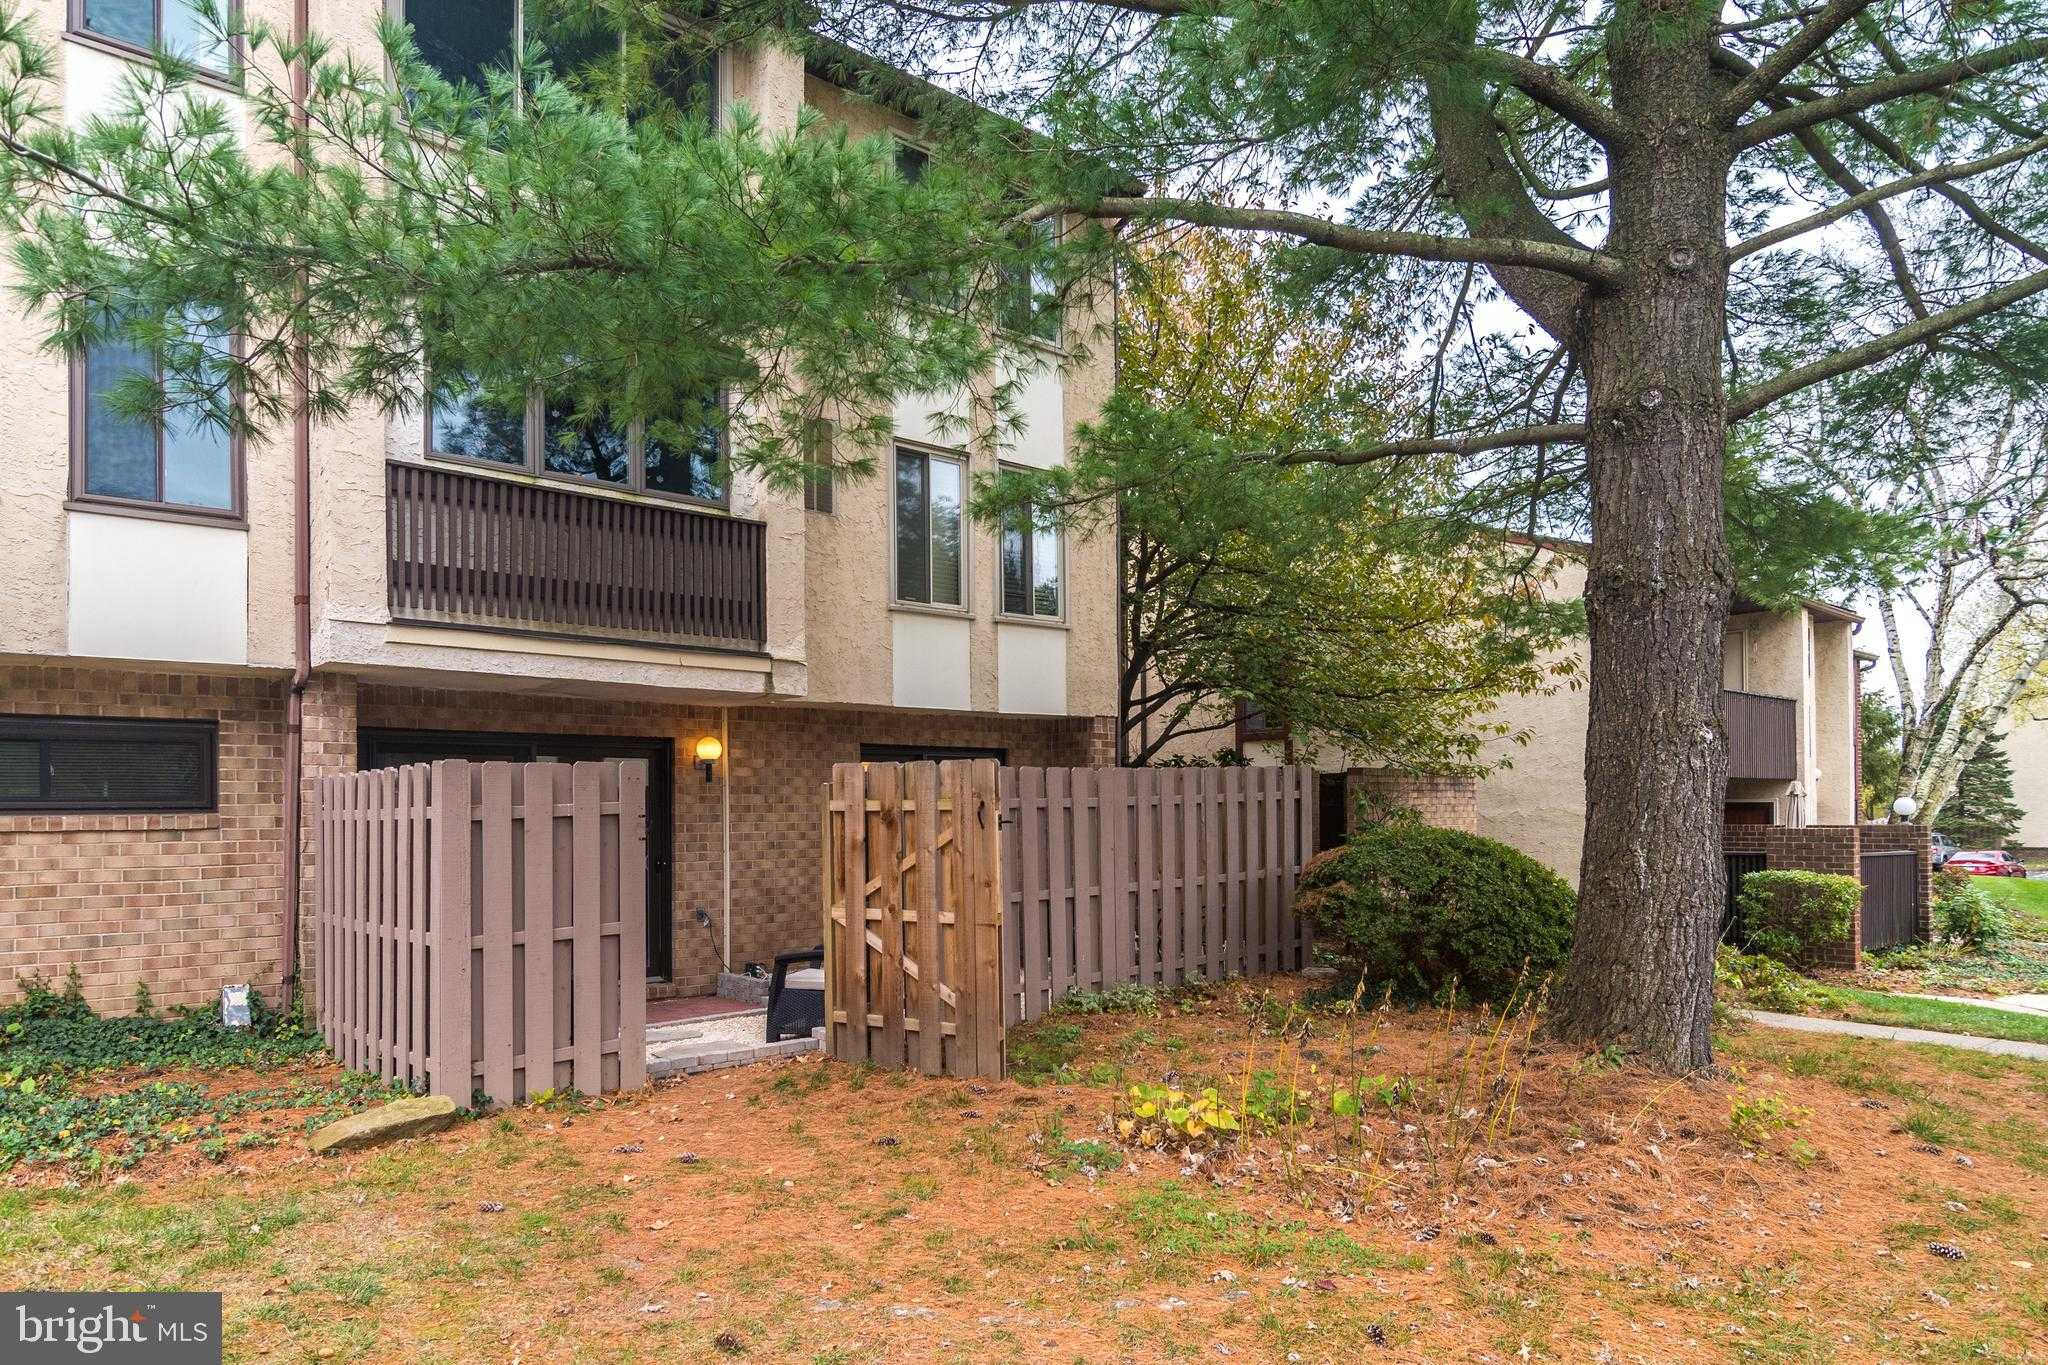 $200,000 - 2Br/2Ba -  for Sale in Chestnut Grove, Doylestown